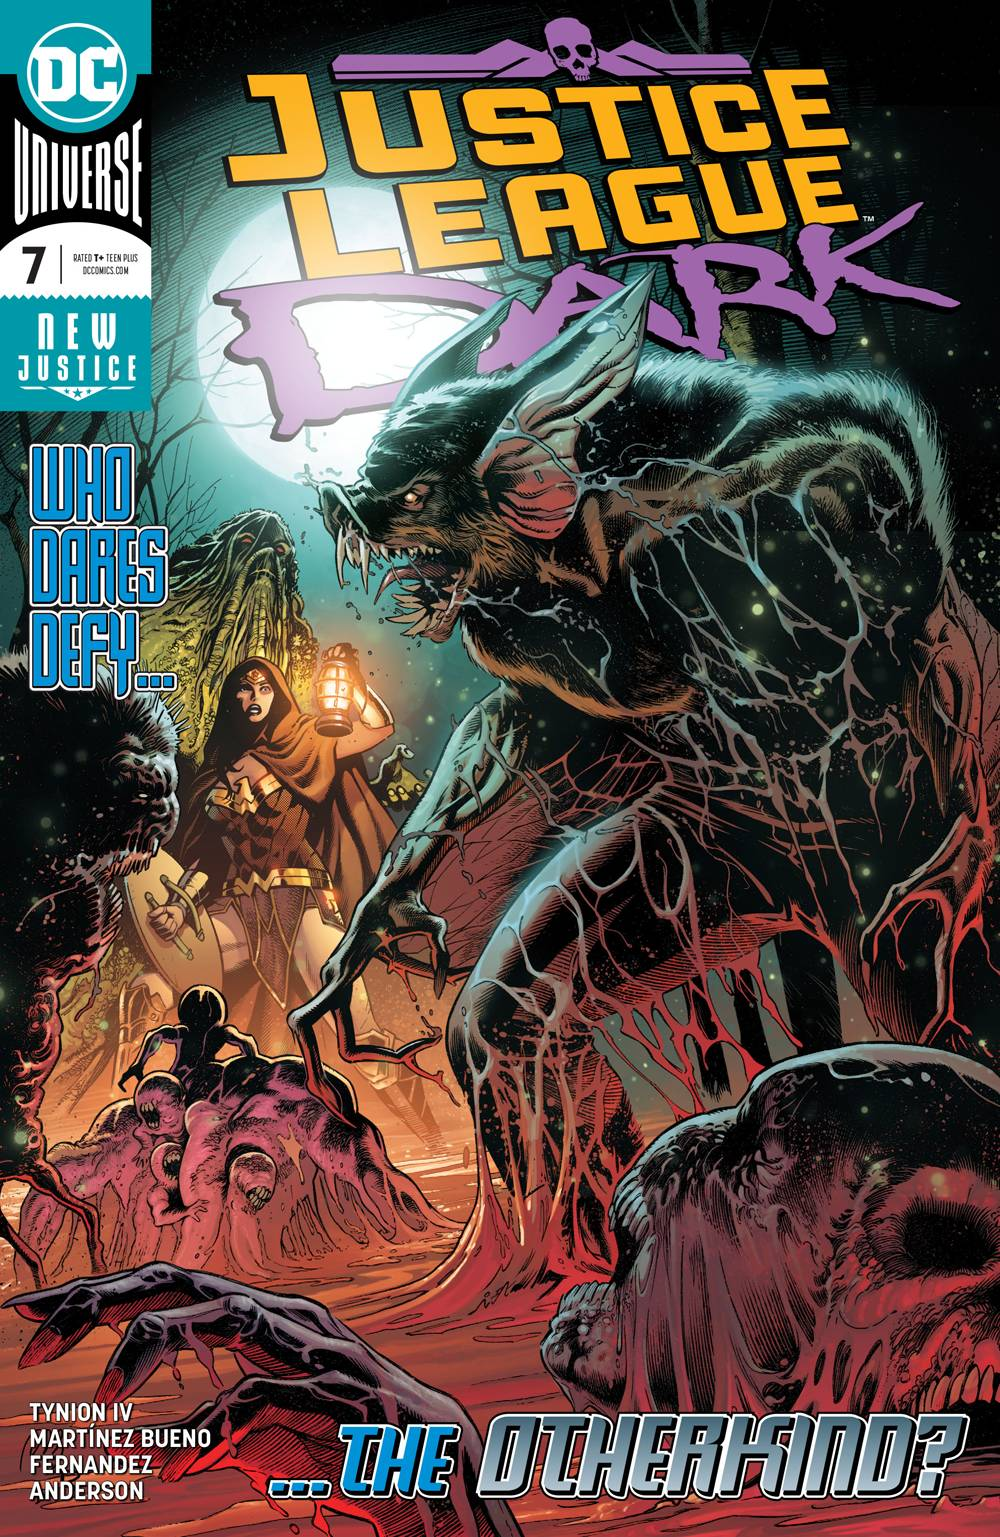 JUSTICE LEAGUE DARK 7.jpg